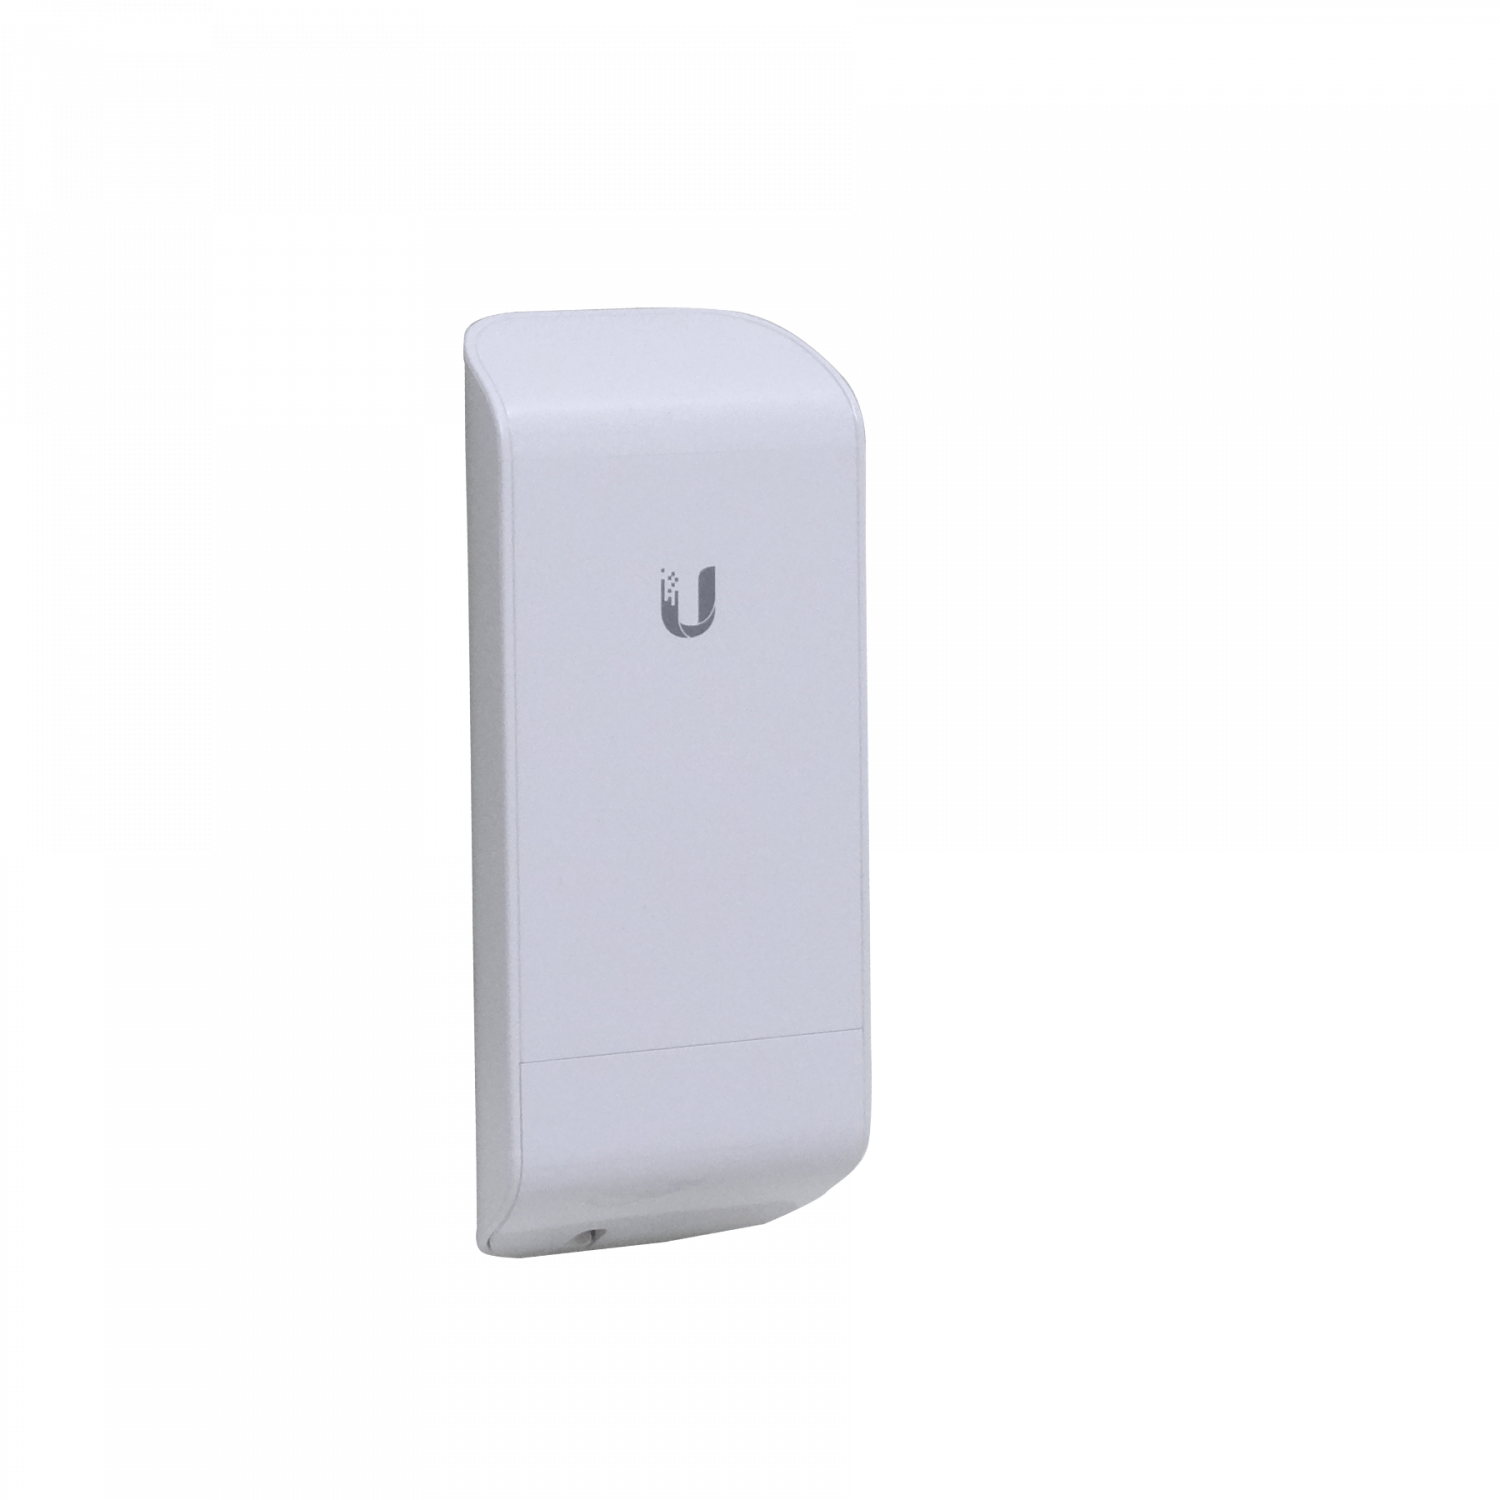 Access Point Ubiquiti Airmax® 2.4 GHz NanoStation LOCOM2